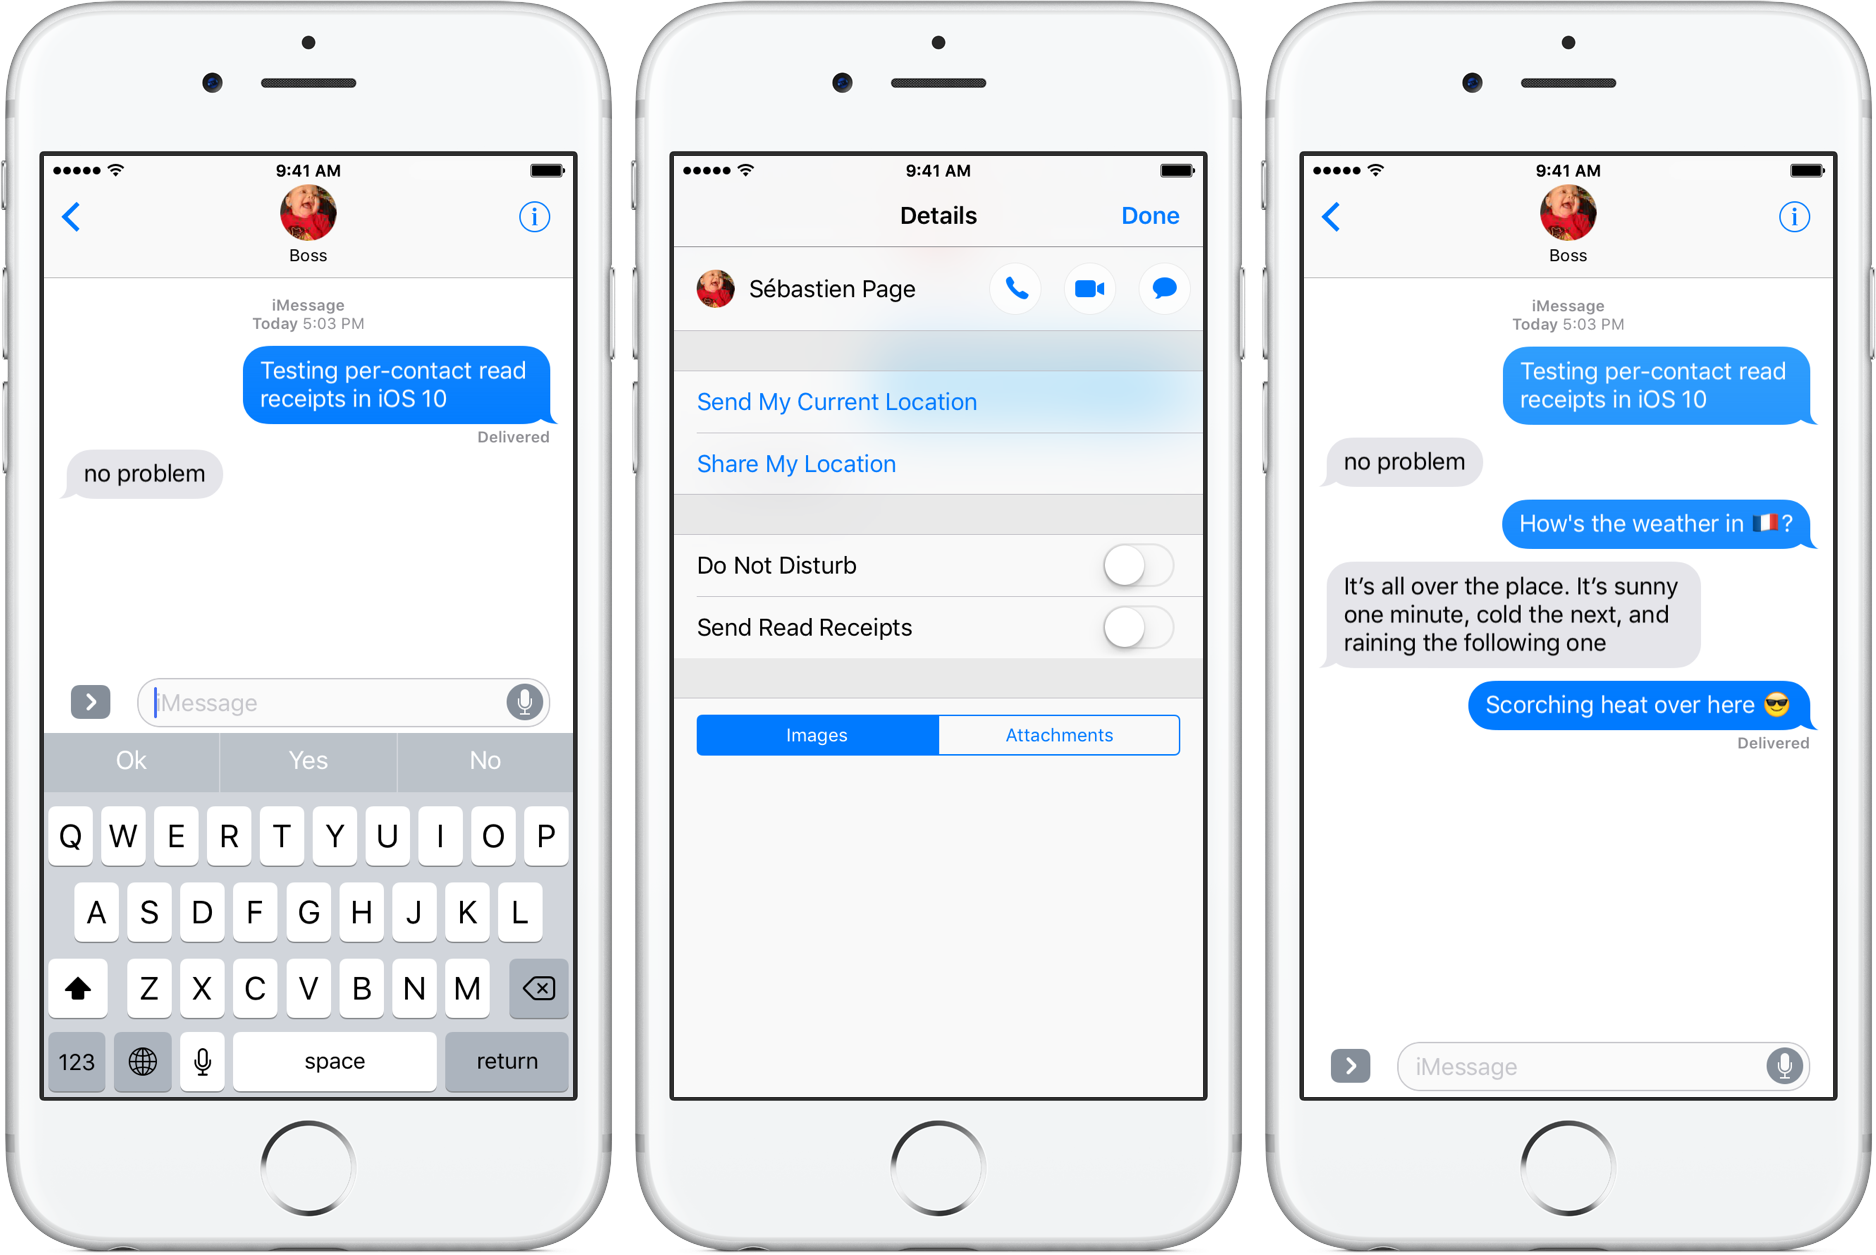 How to turn read receipts on for individual conversations in iMessage for iOS 10: